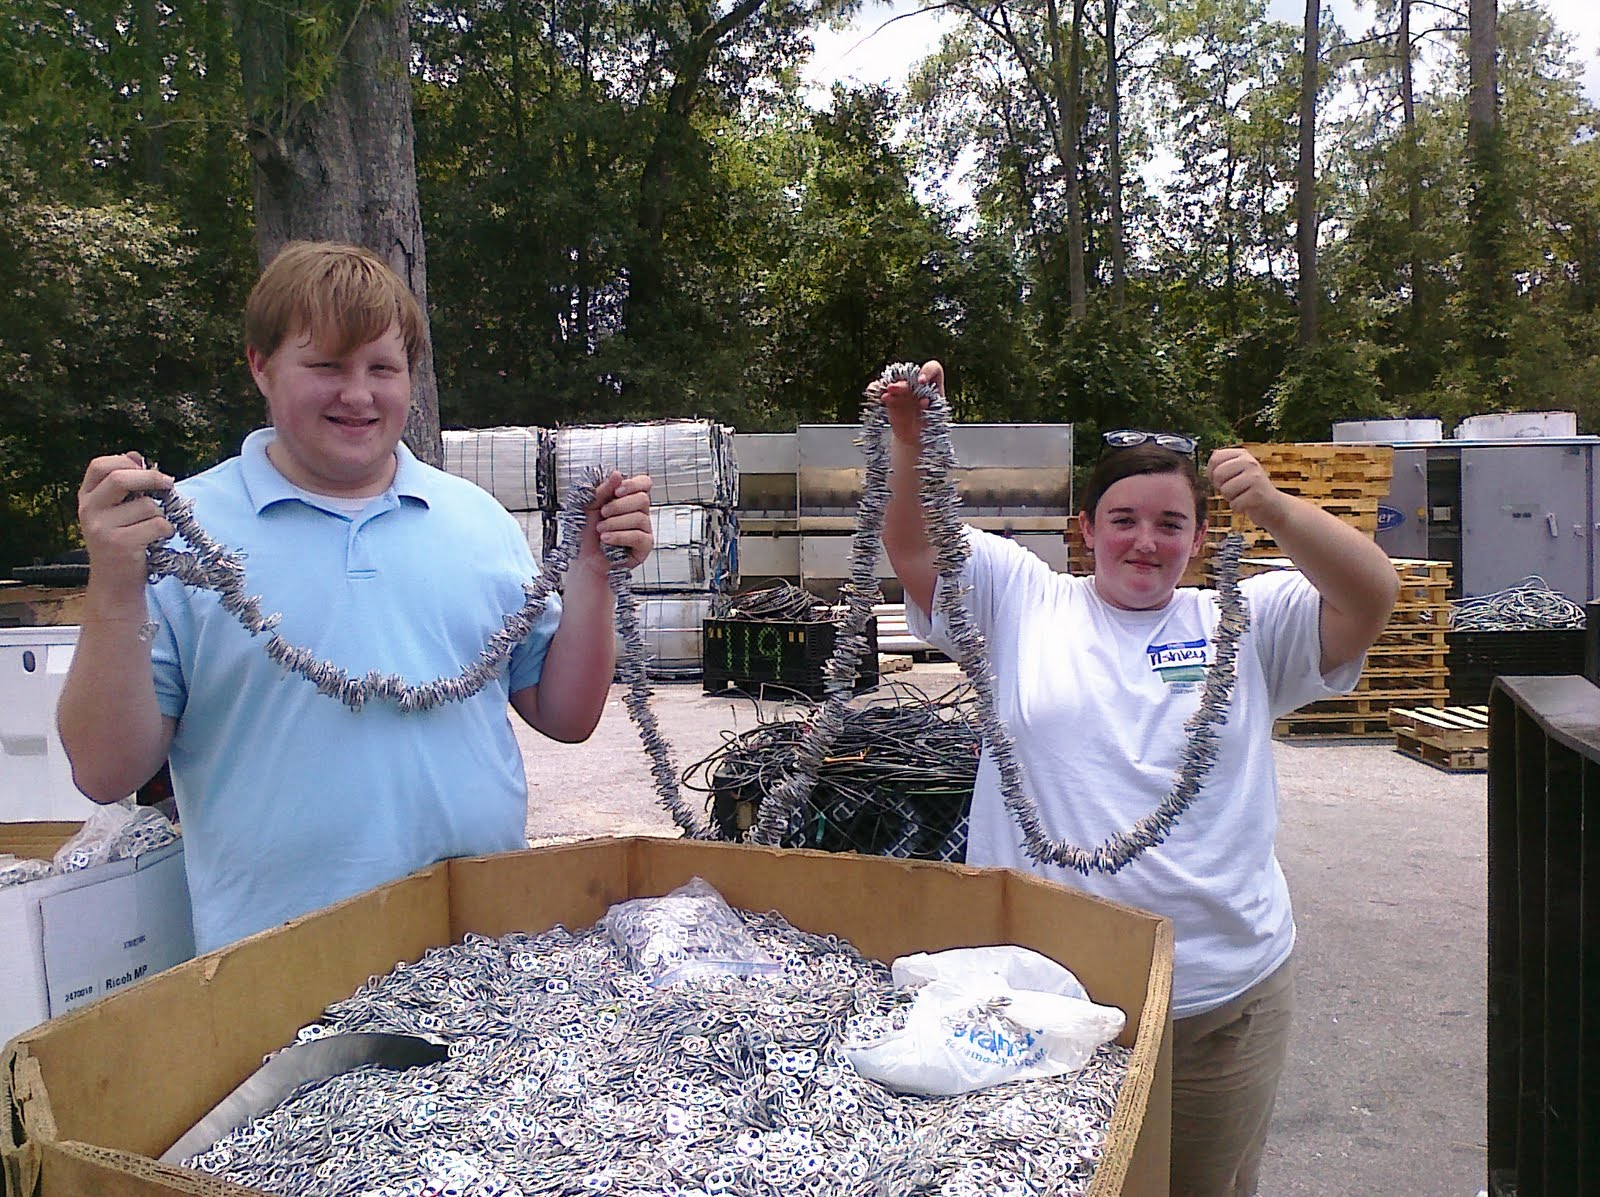 Over the past 10 years, Georgia 4-H'ers have collected aluminum pop tabs to help fund Ronald McDonald House Charities. Joe Wiggins and Ashley Carroll, Colquitt County senior 4-H'ers, are shown displaying the tabs collected in their county.